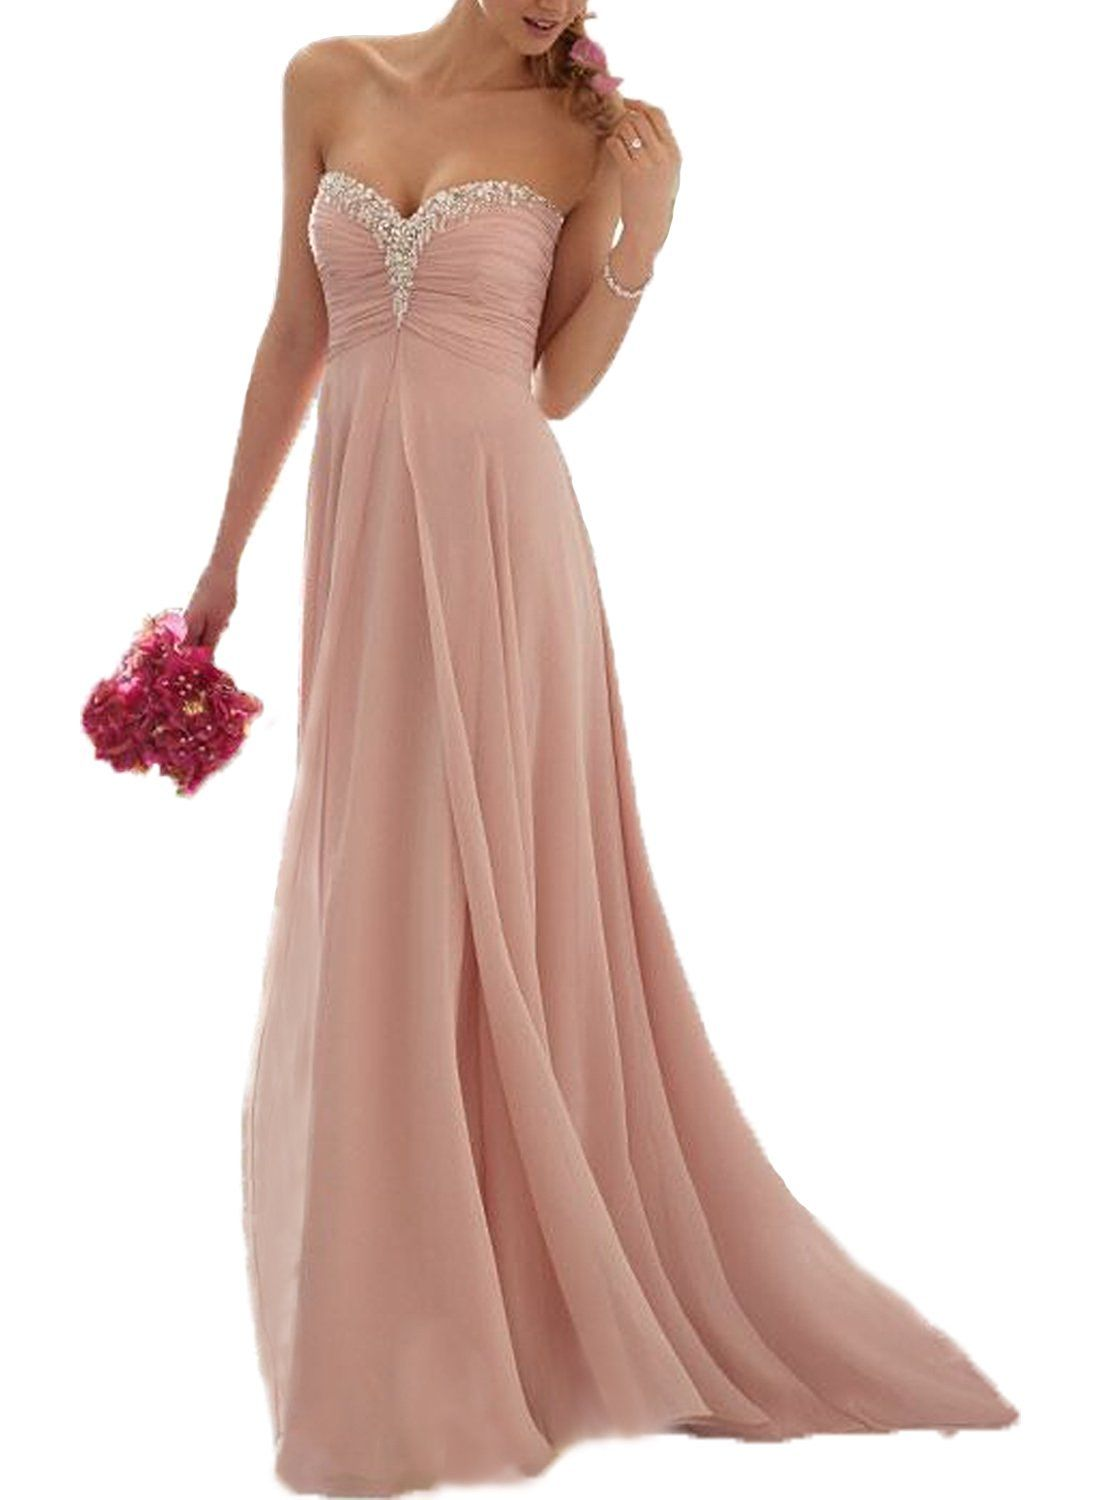 Now And Forever In Stock Sweetheart Beaded Coral Bridesmaid Dress